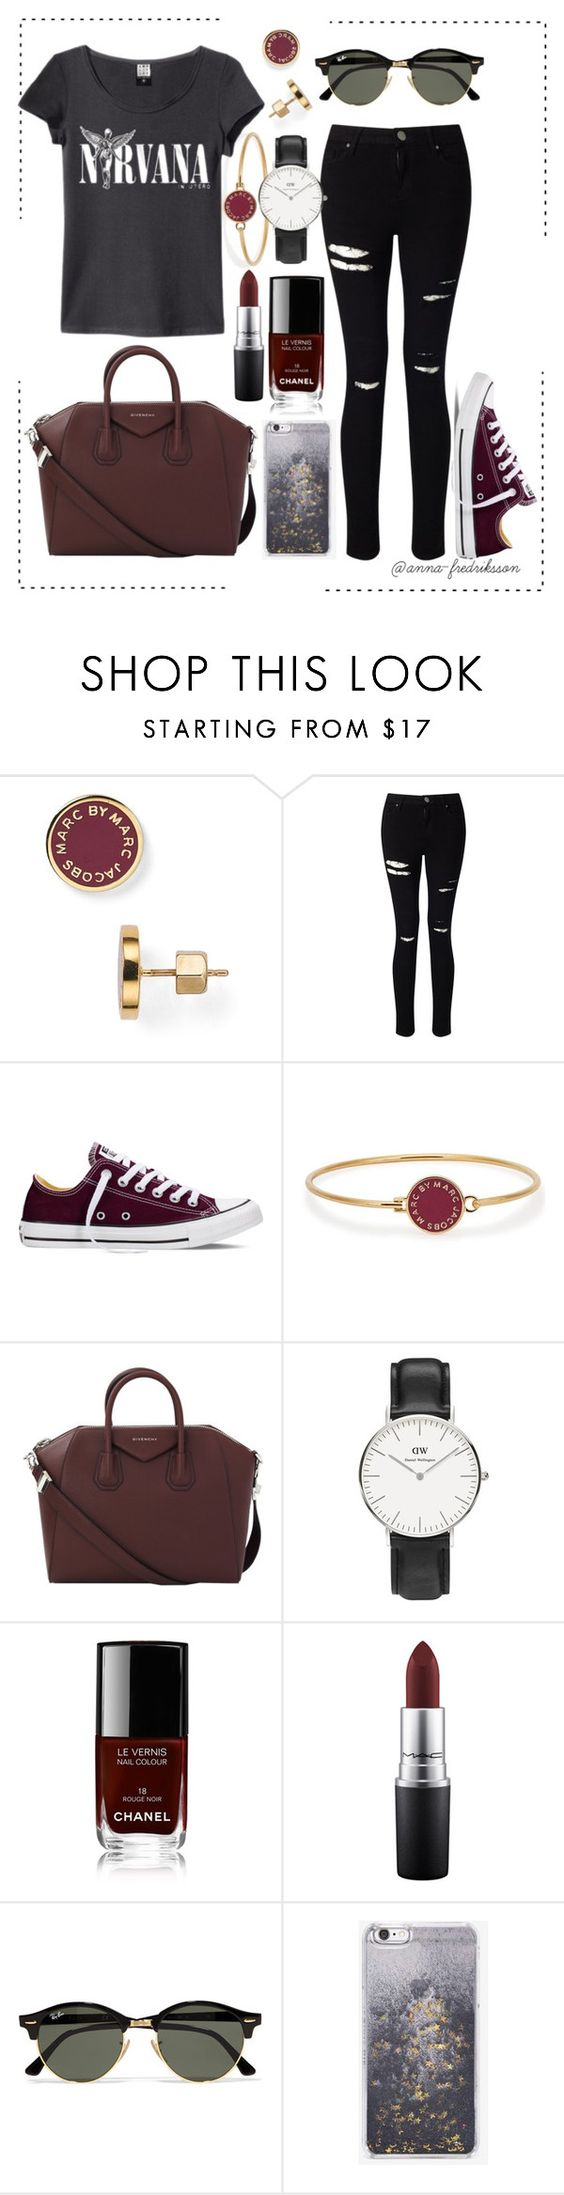 """""""Rocker Chic"""" by anna-fredriksson ❤ liked on Polyvore featuring Marc by Marc Jacobs, Miss Selfridge, Converse, Givenchy, Daniel Wellington, Chanel, MAC Cosmetics, Ray-Ban and Skinnydip"""